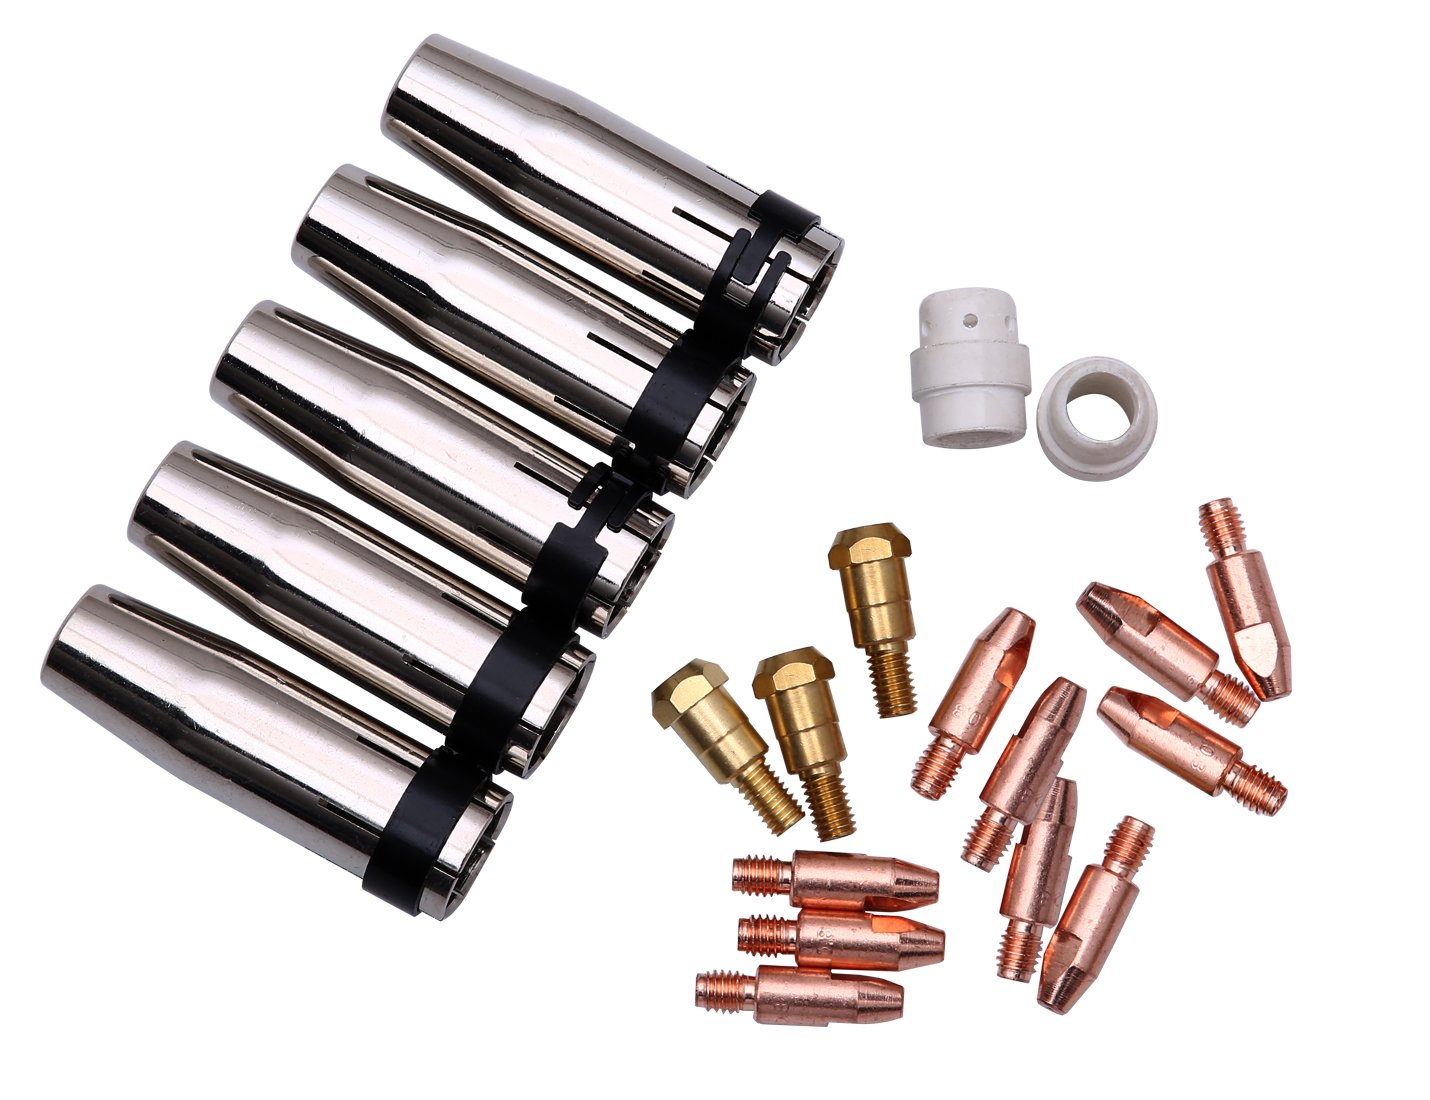 Weldflame 20Pcs MB-24KD Gas Nozzle145.0080 Contact Tip 0.8mm Contact Tip Holder Diffuser Weldflame Co Ltd